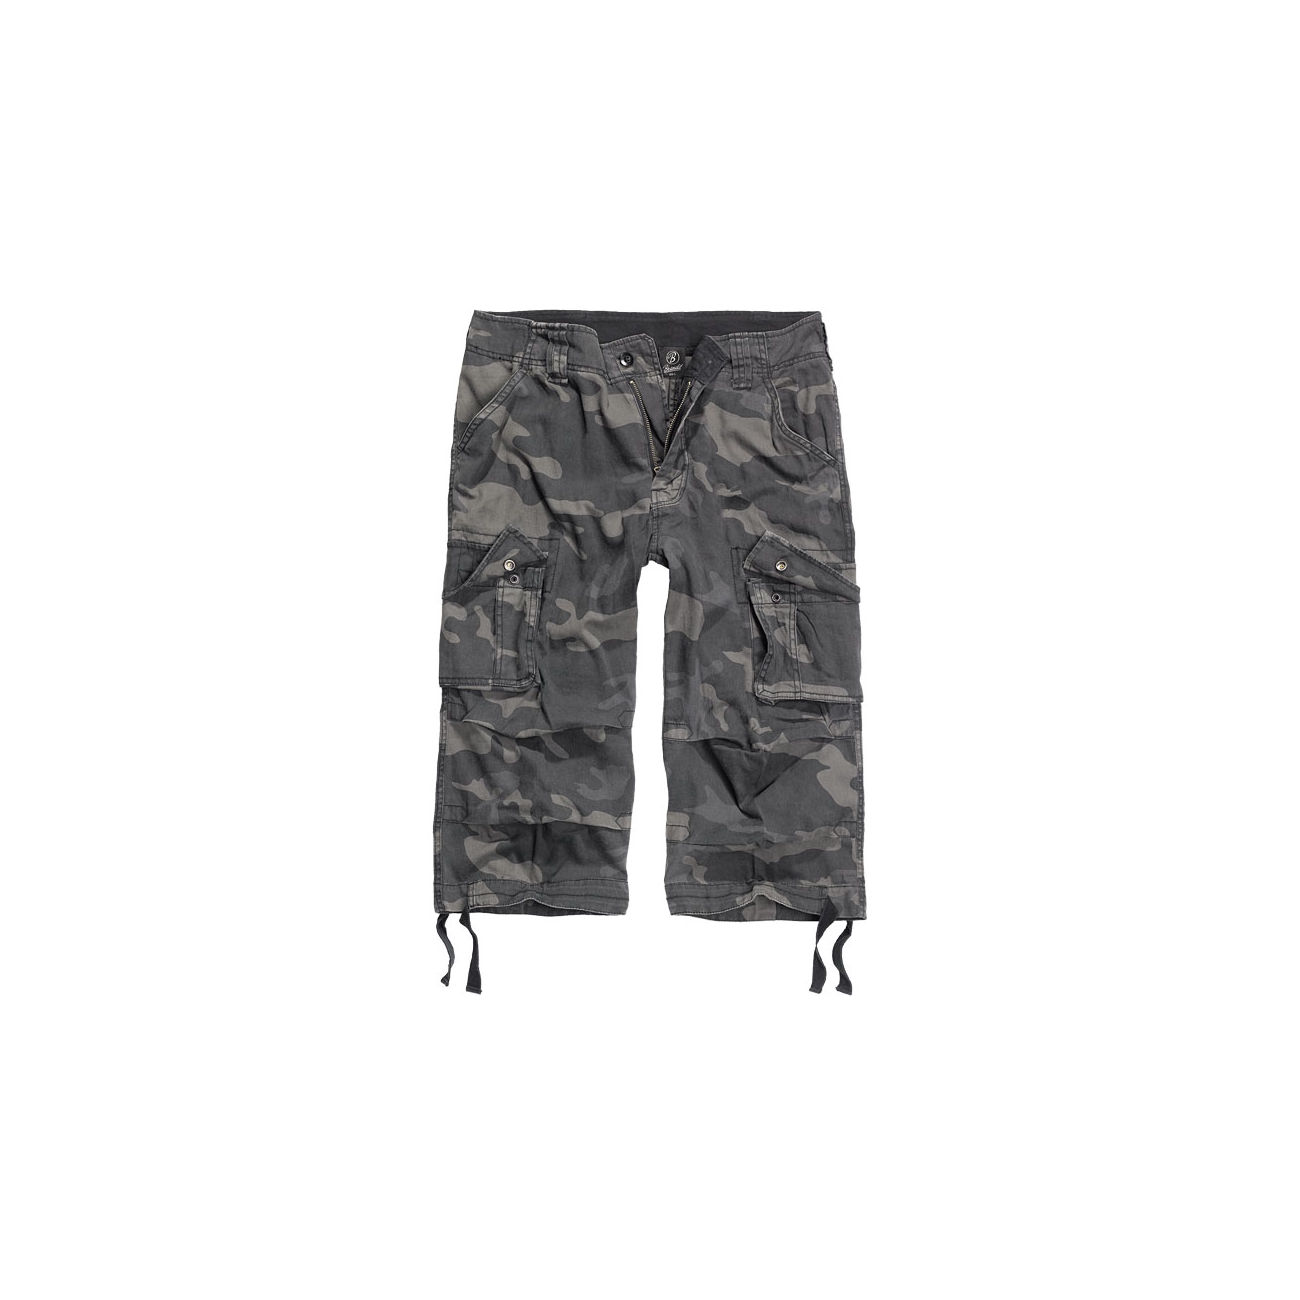 Brandit Urban Legend 3/4 Short darkcamo 0